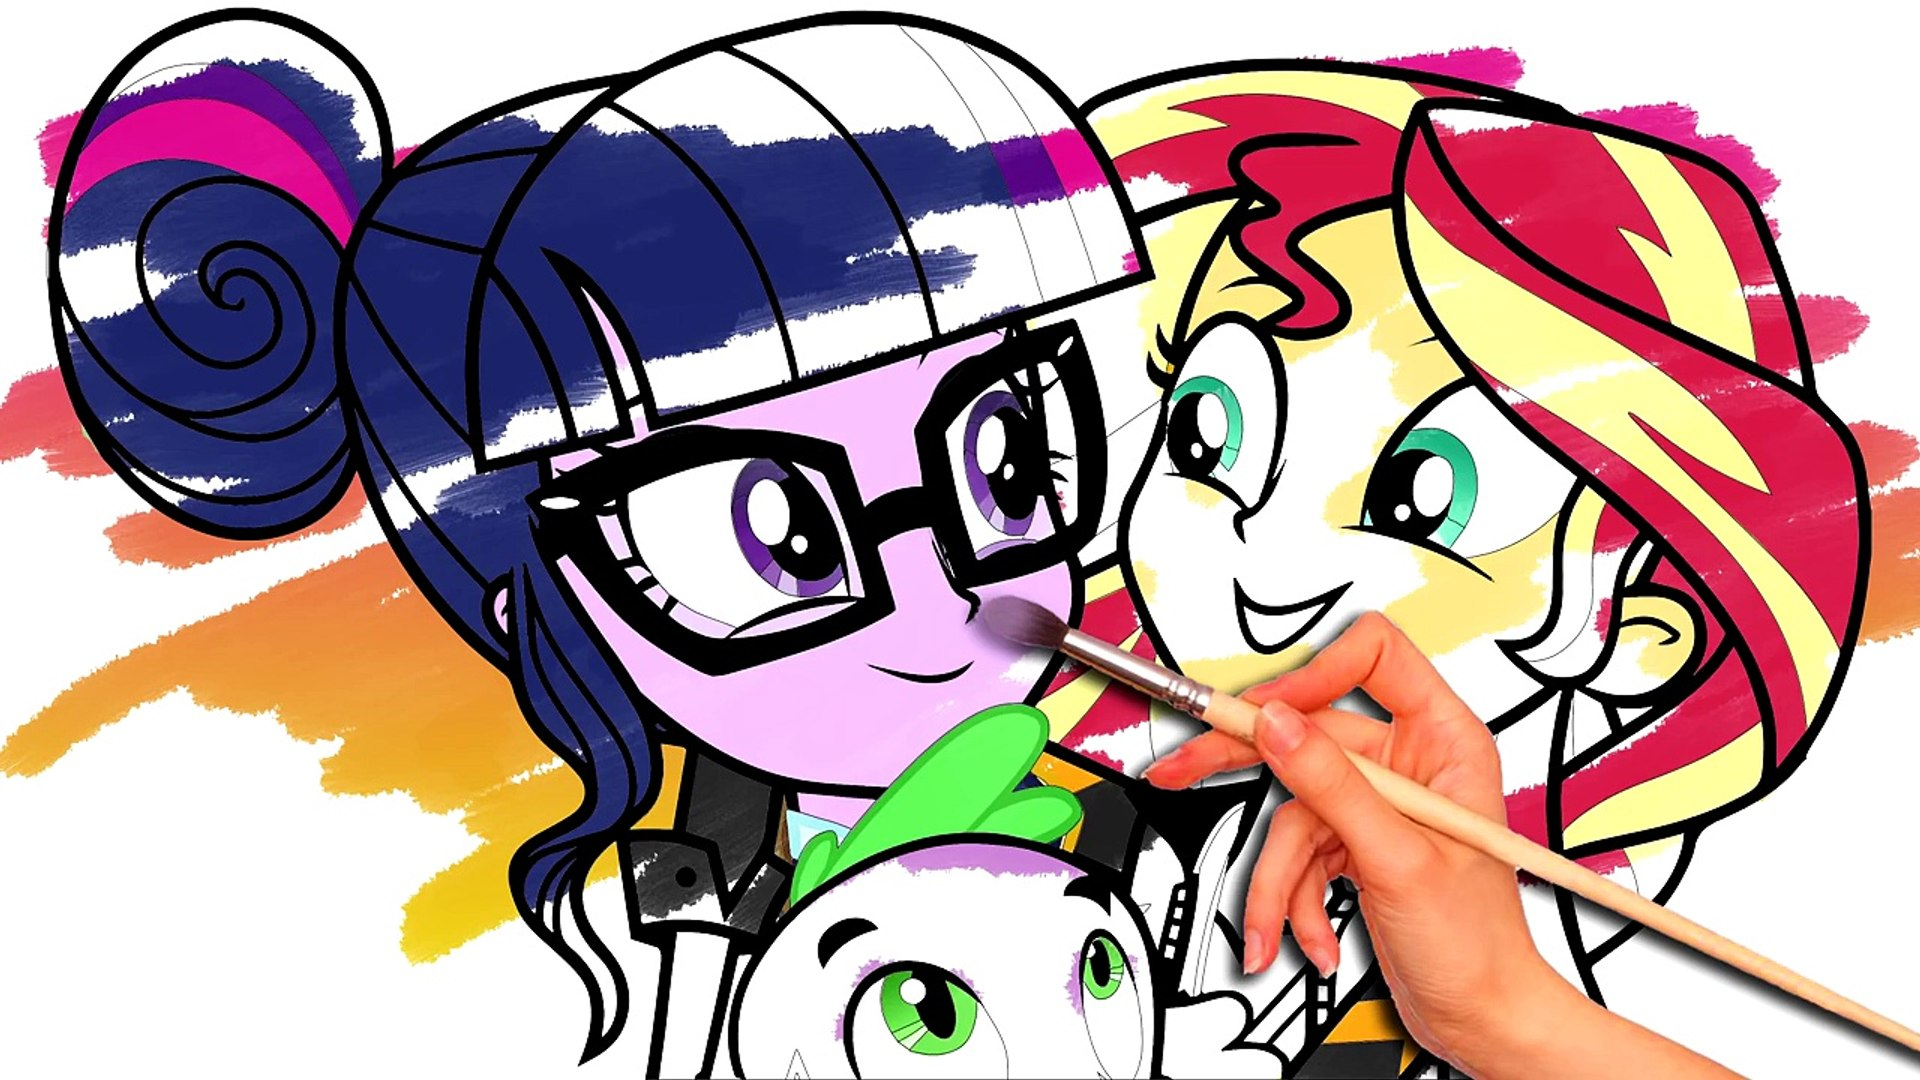 - My Little Pony Coloring Book: Equestria Girls - Friendship Games